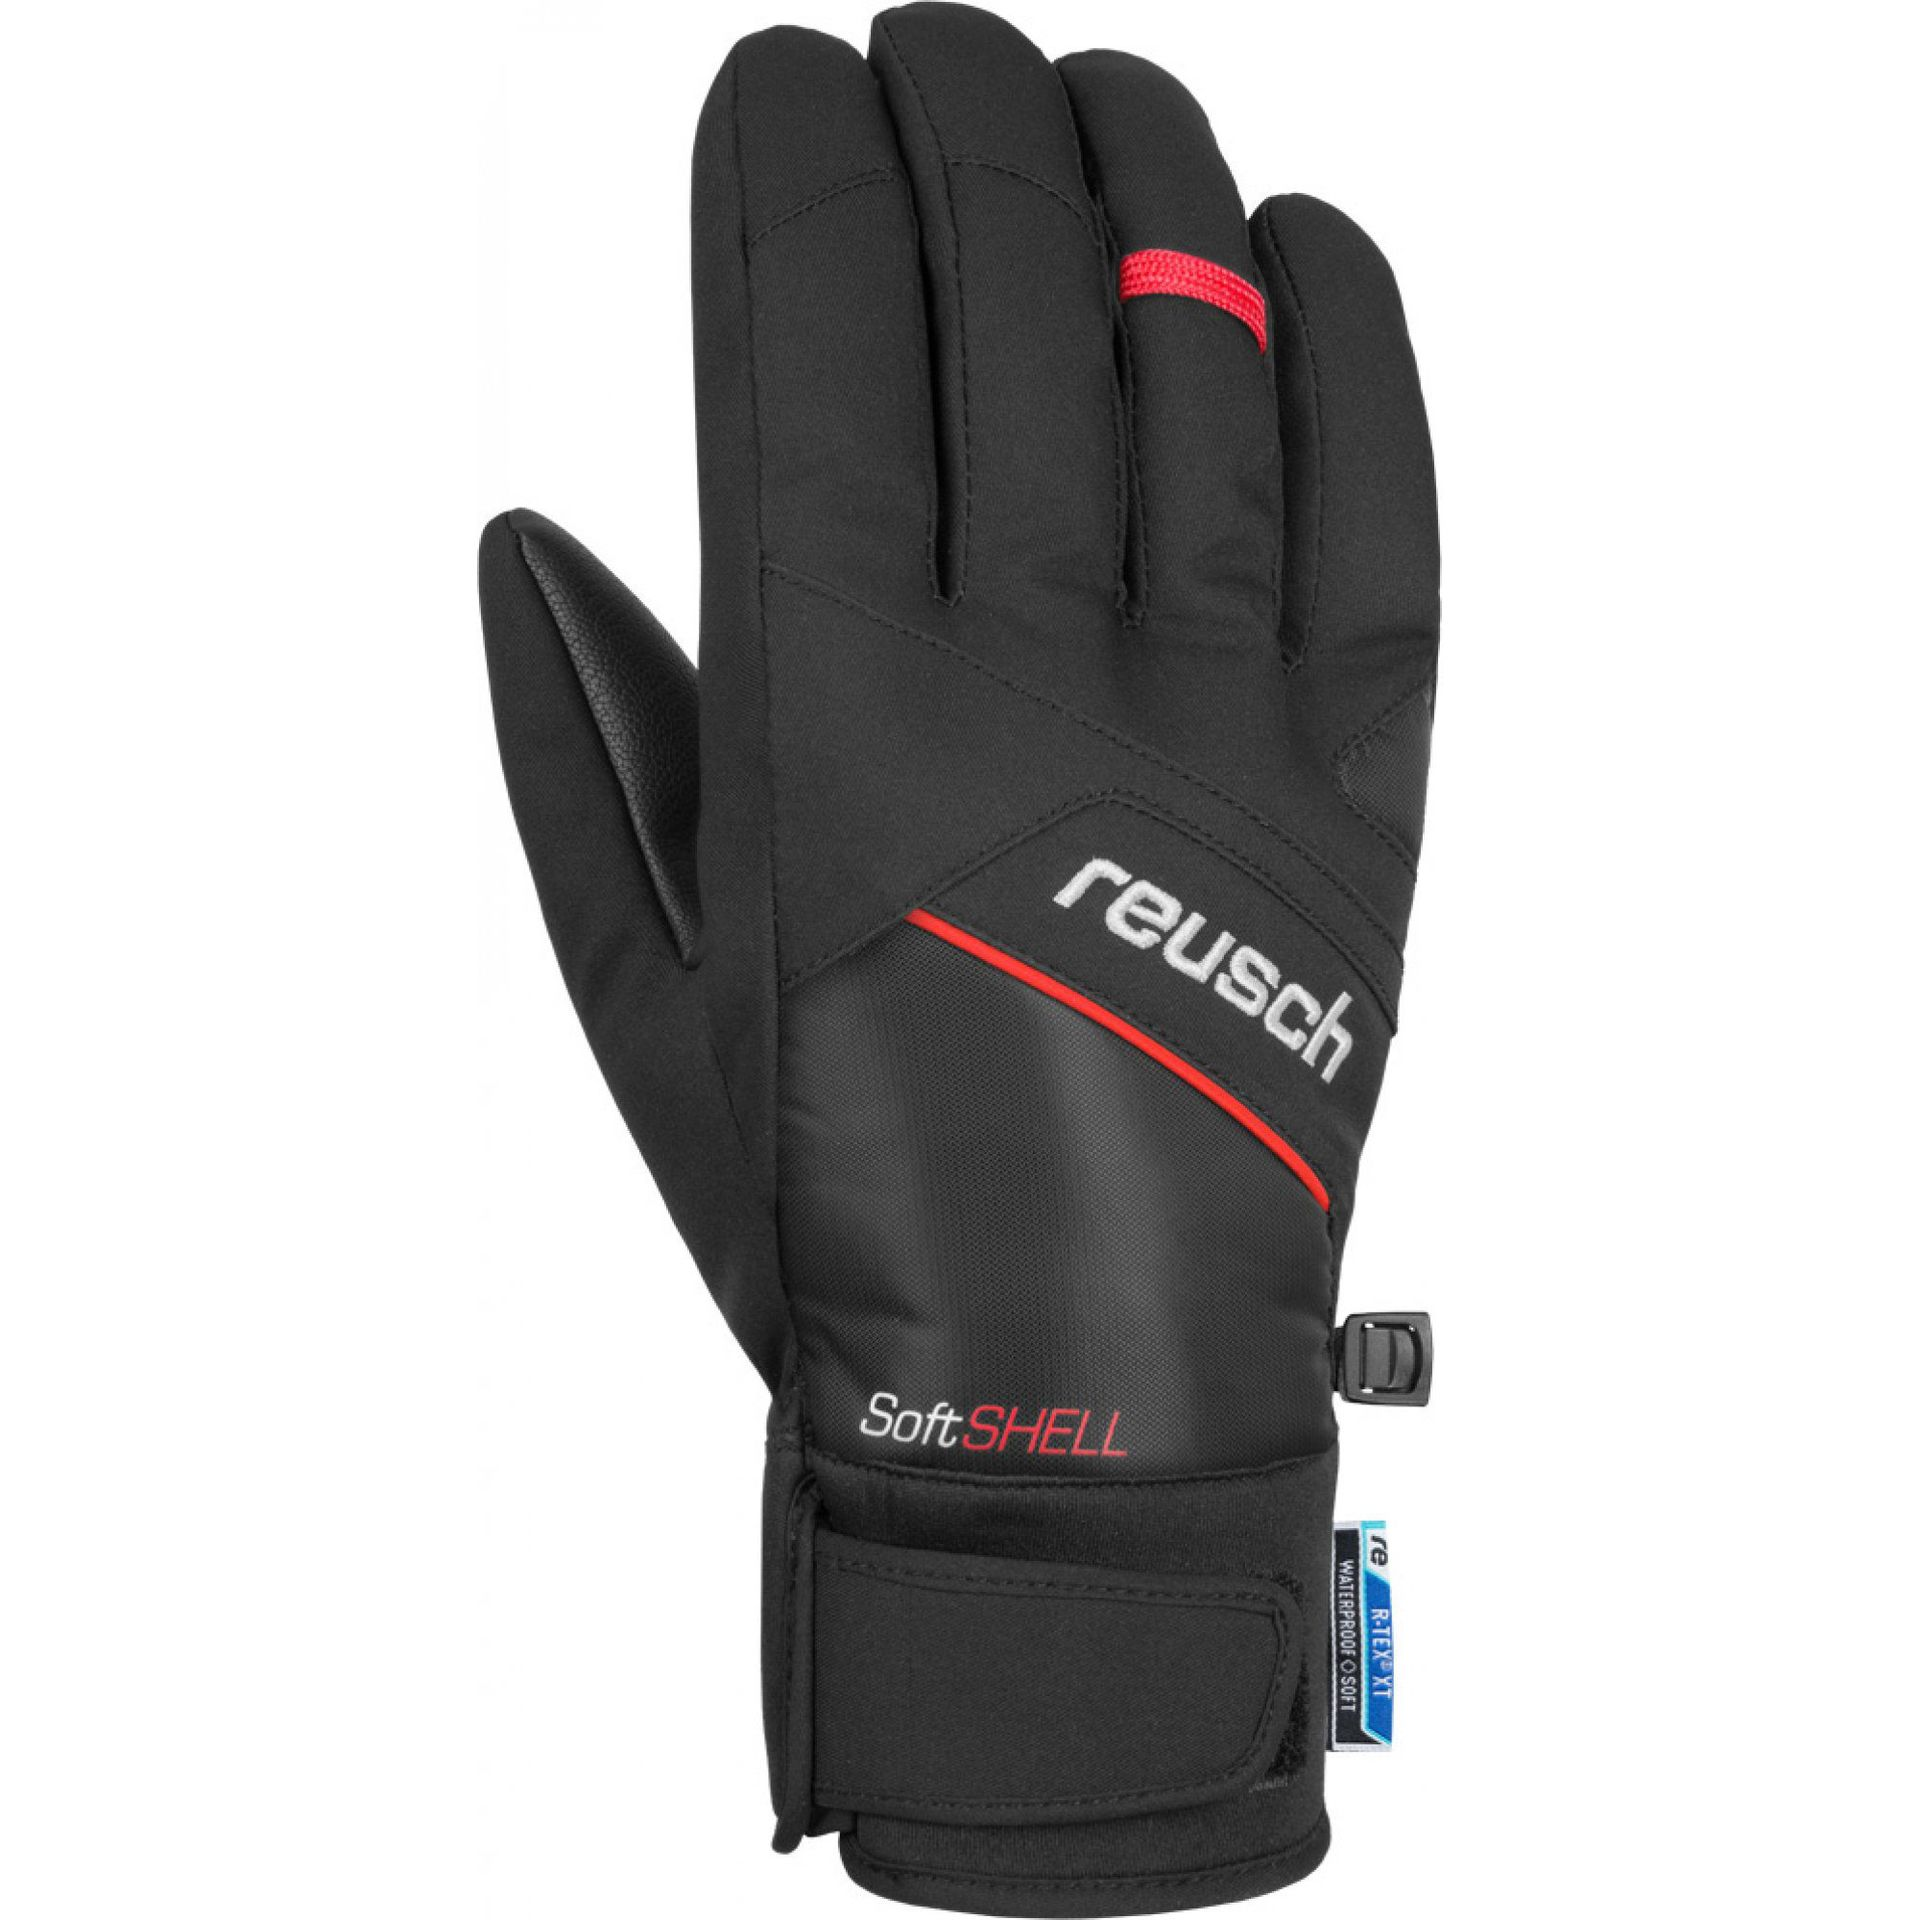 RĘKAWICE REUSCH #LUKE R-TEX XT BLACK FIRE RED 705